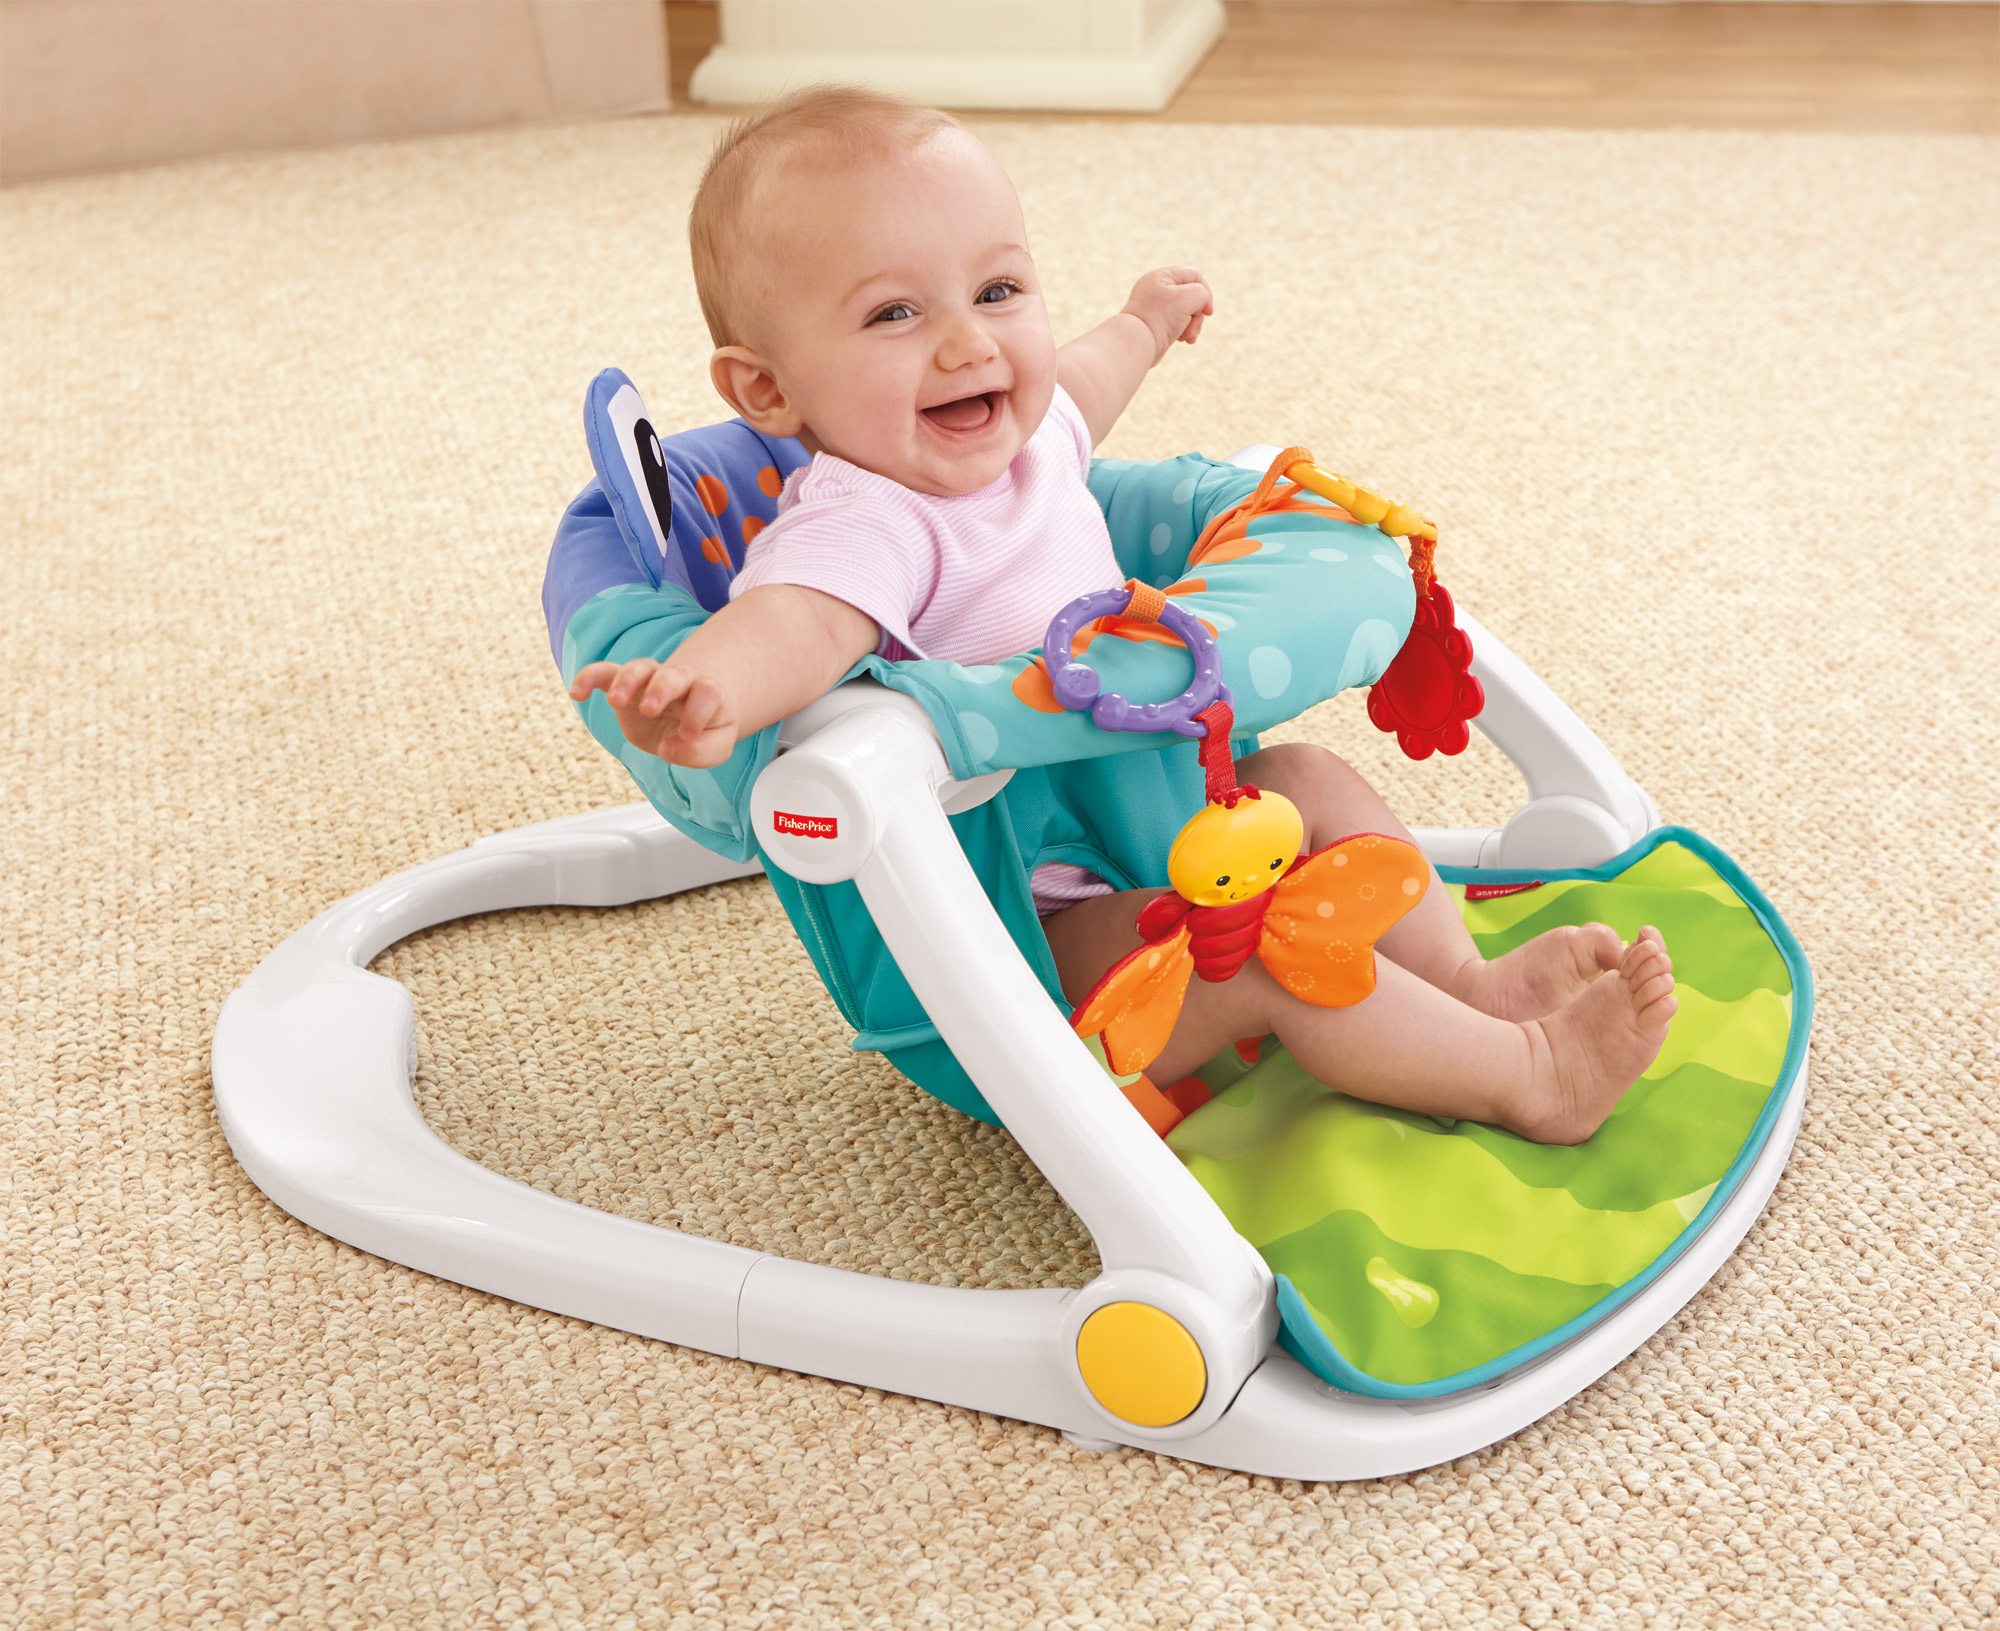 Baby bath chair walmart - Baby Bath Chair Walmart 46